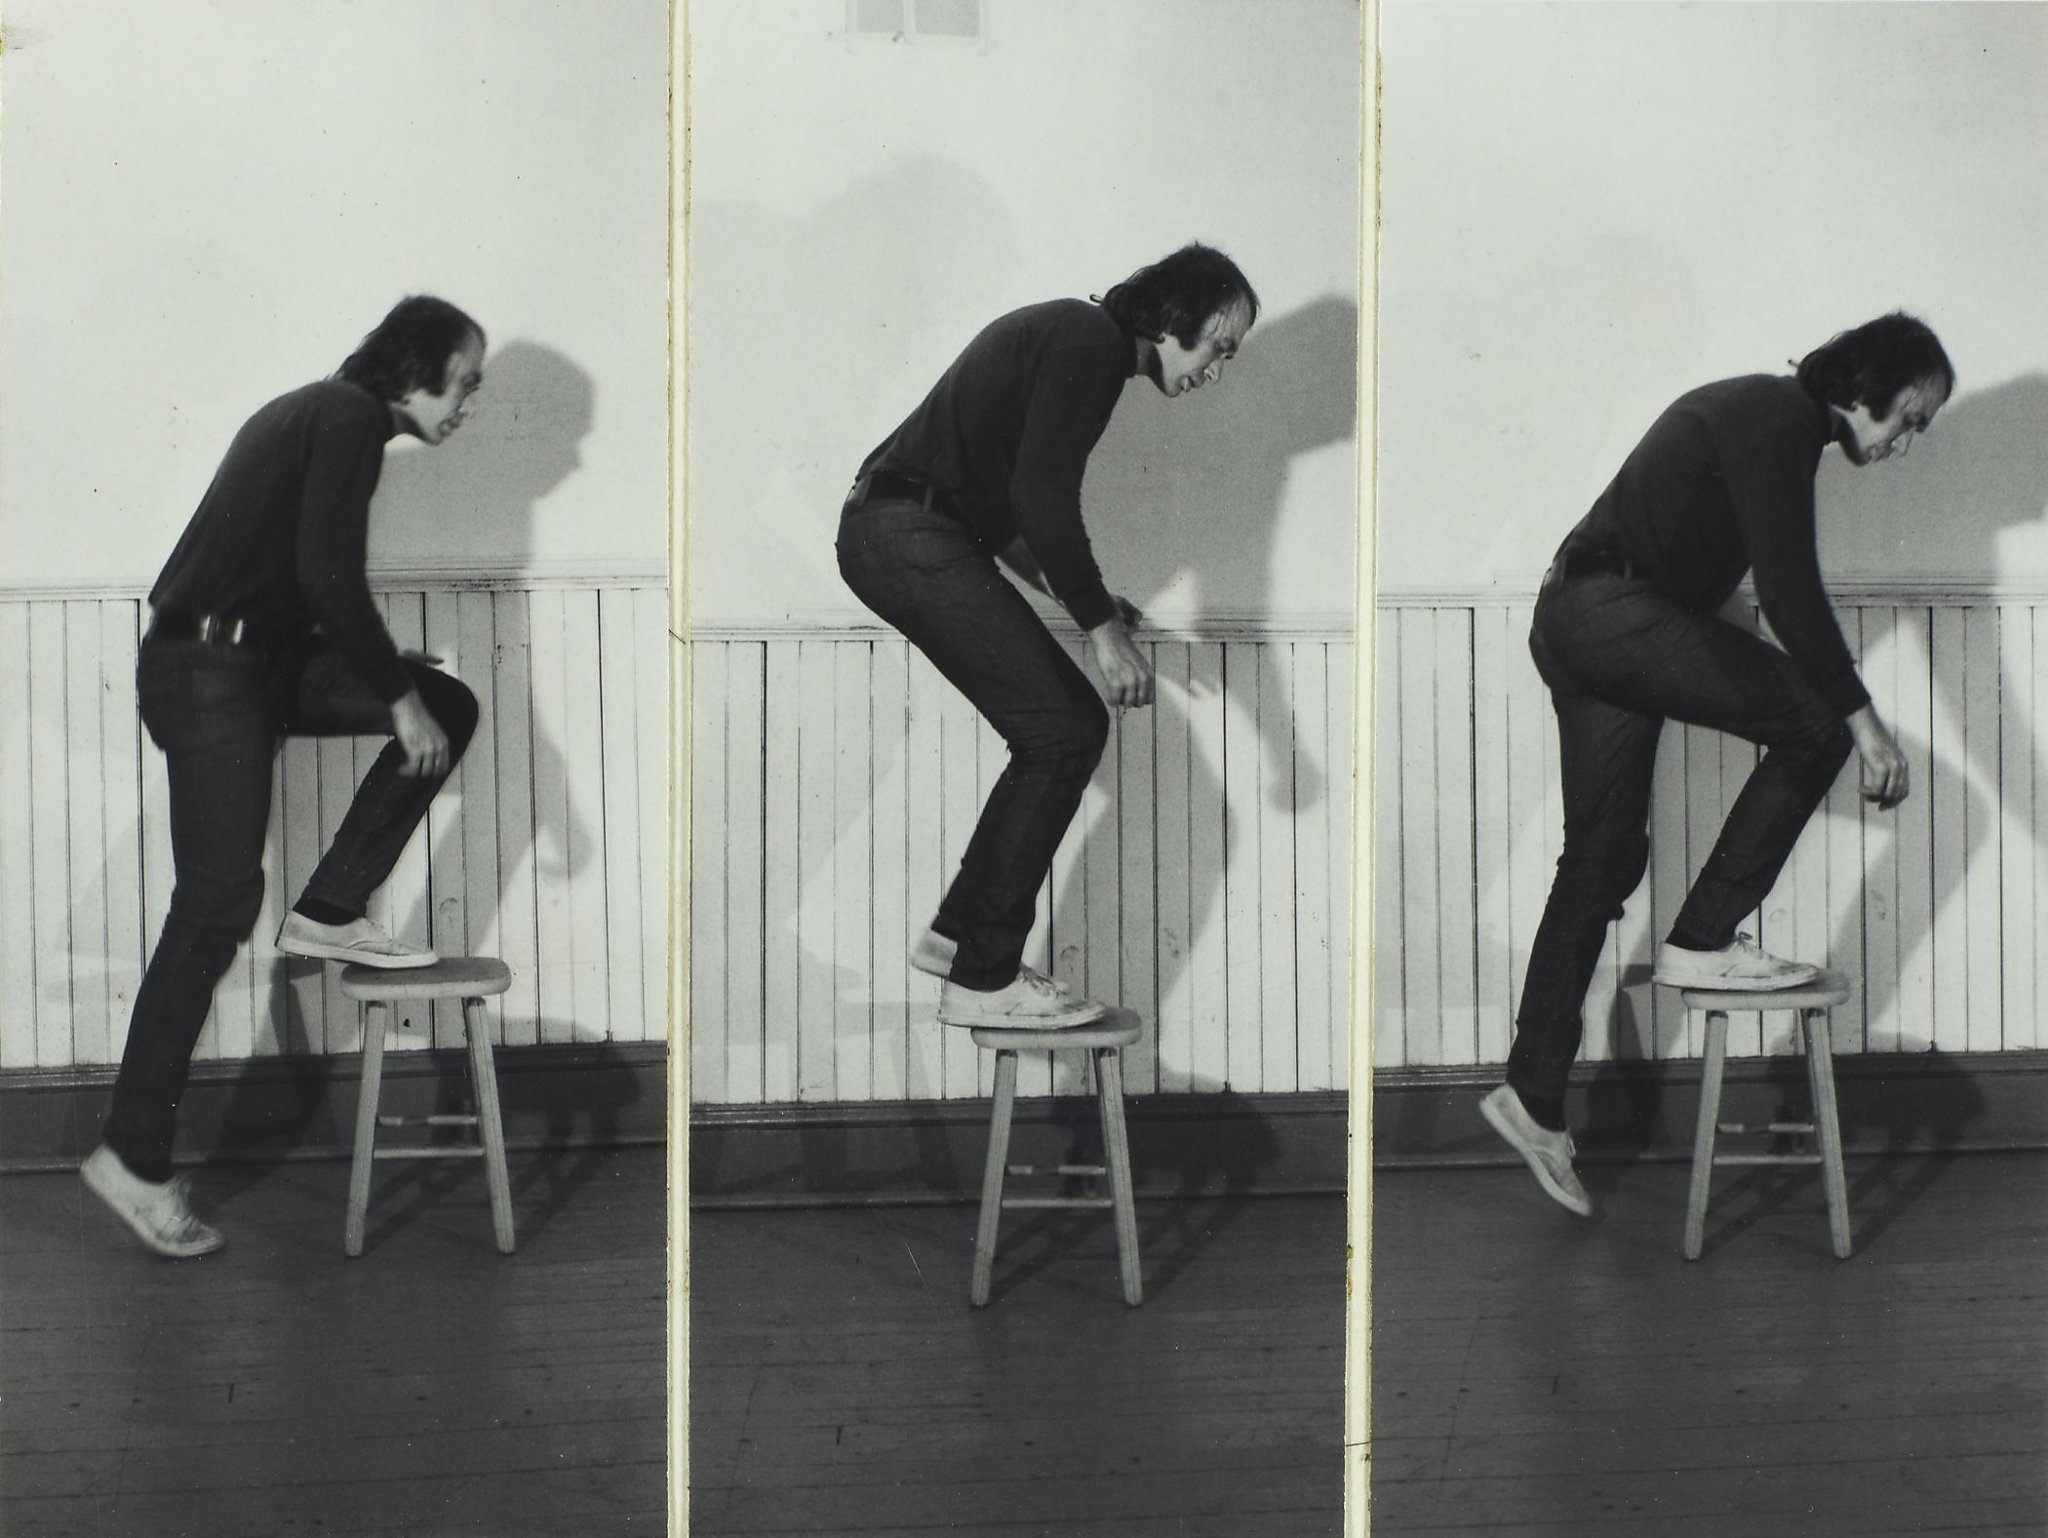 Some of Vito Acconci's most influential performances – Public Delivery